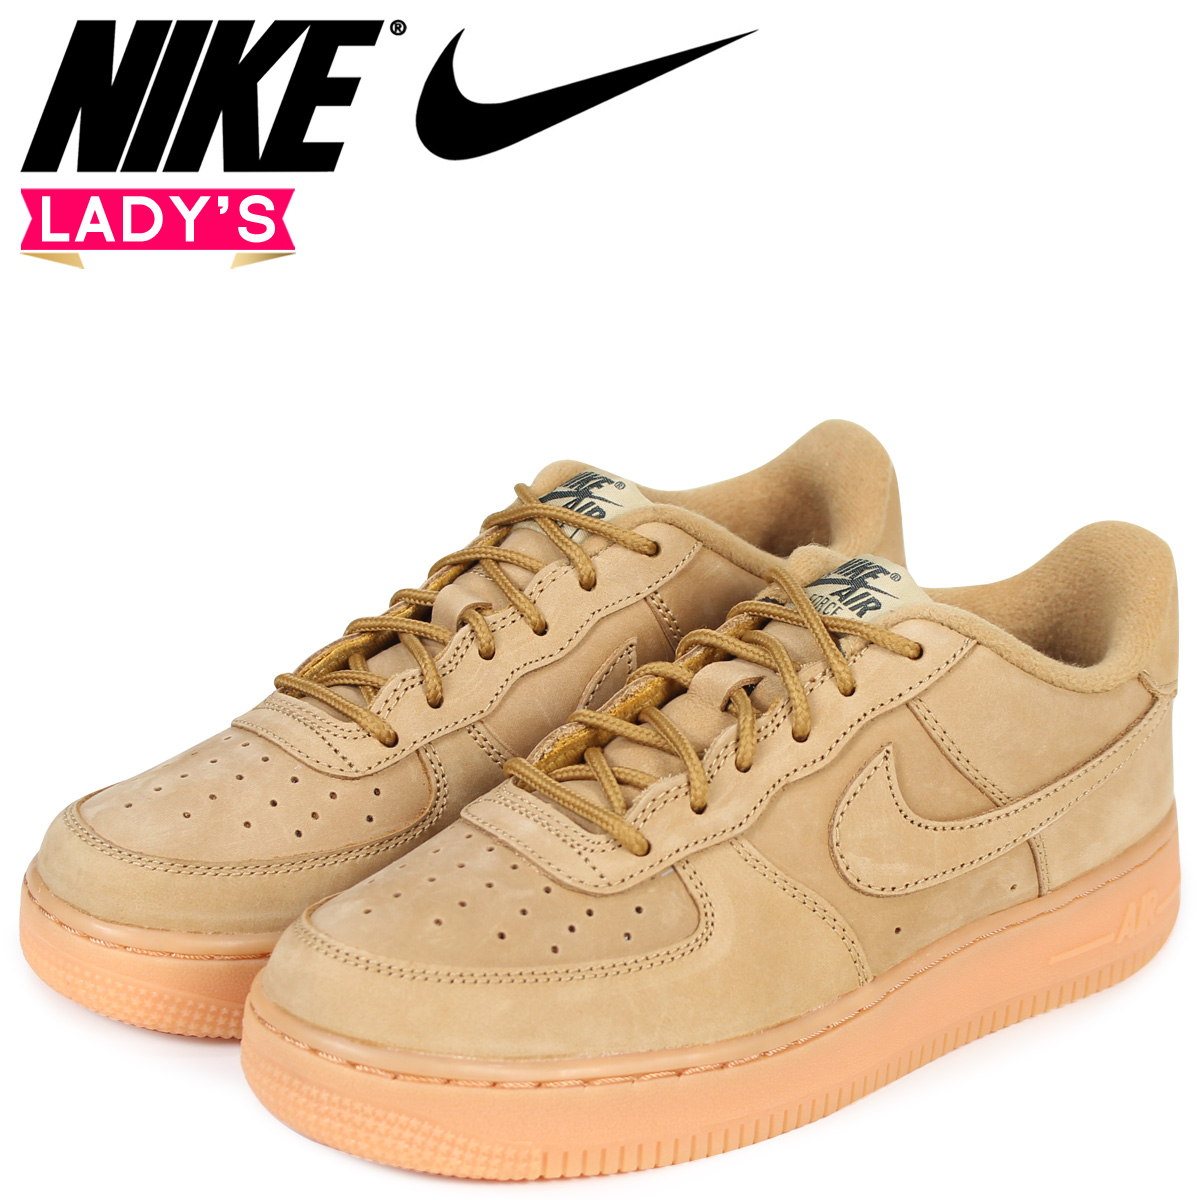 dfda254e5a1a Sugar Online Shop  NIKE Nike air force 1 lady s sneakers AIR FORCE 1 LOW WINTER  PREMIUM GS WHEAT 943